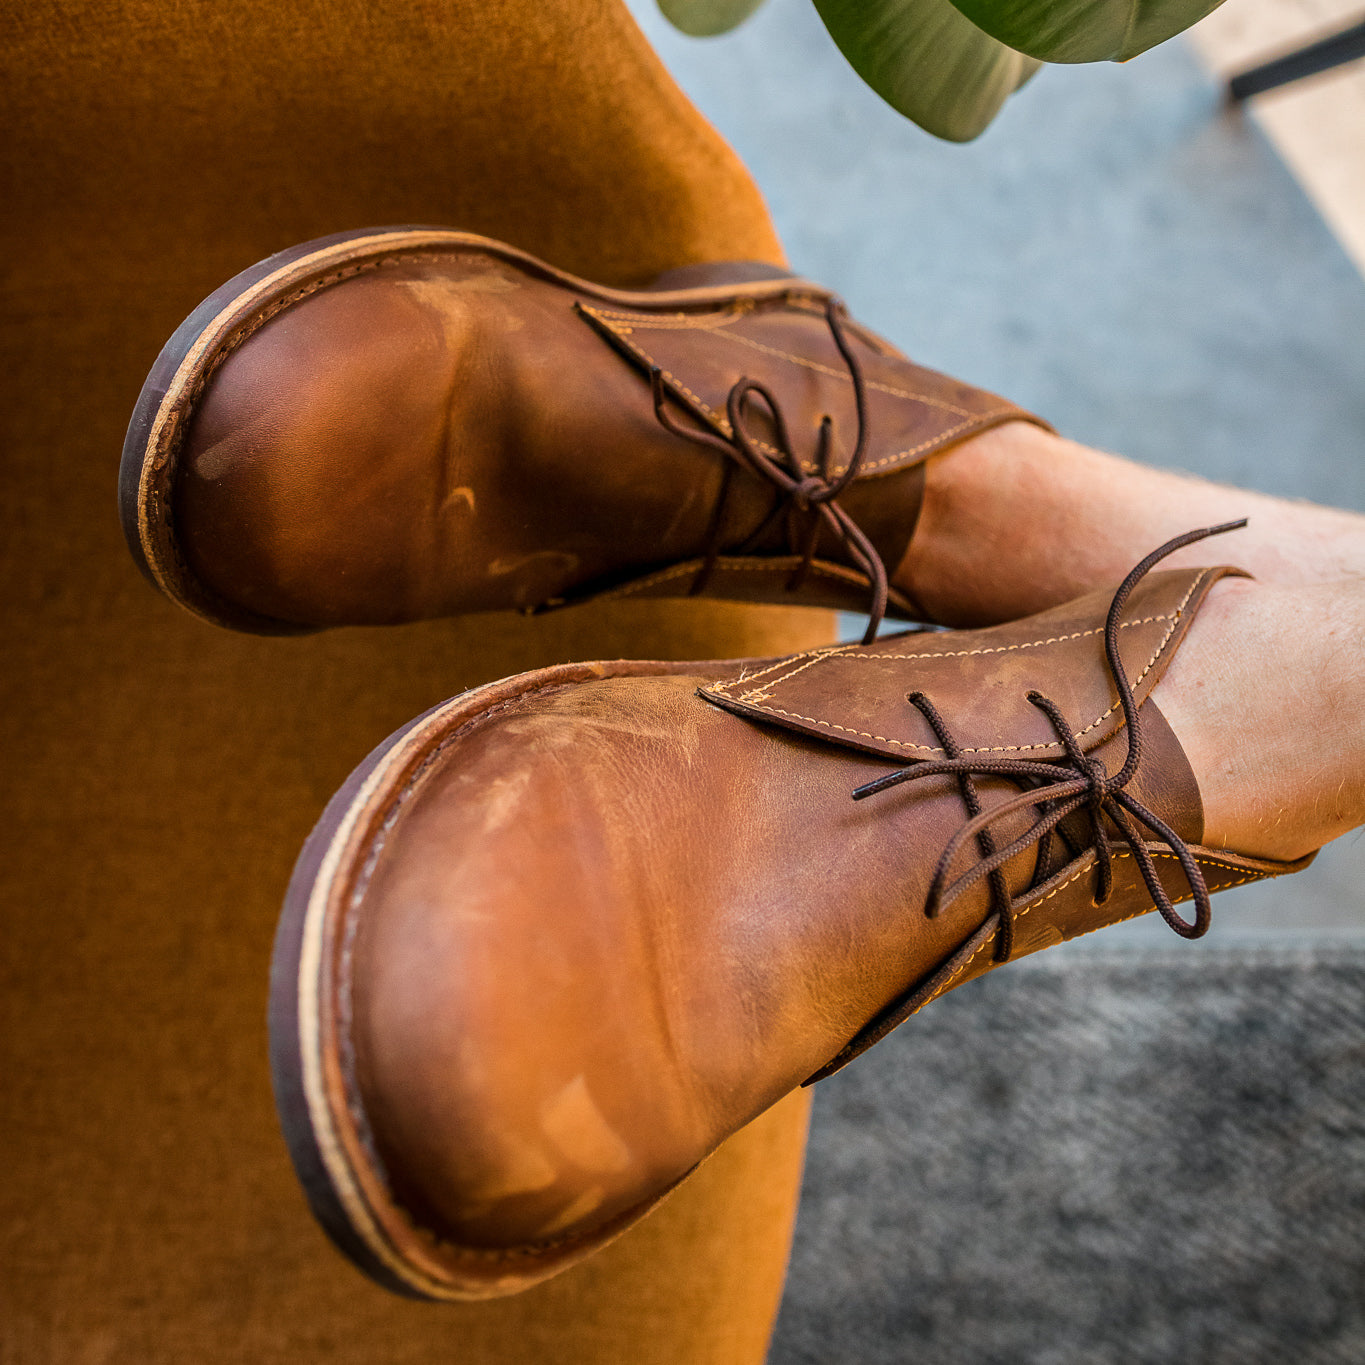 Veldskoen shoes and boots or known as vellies chukka boot ethically and sustainably handcrafted in South Africa sold in united states closeup of man with chukka boot resting on chair